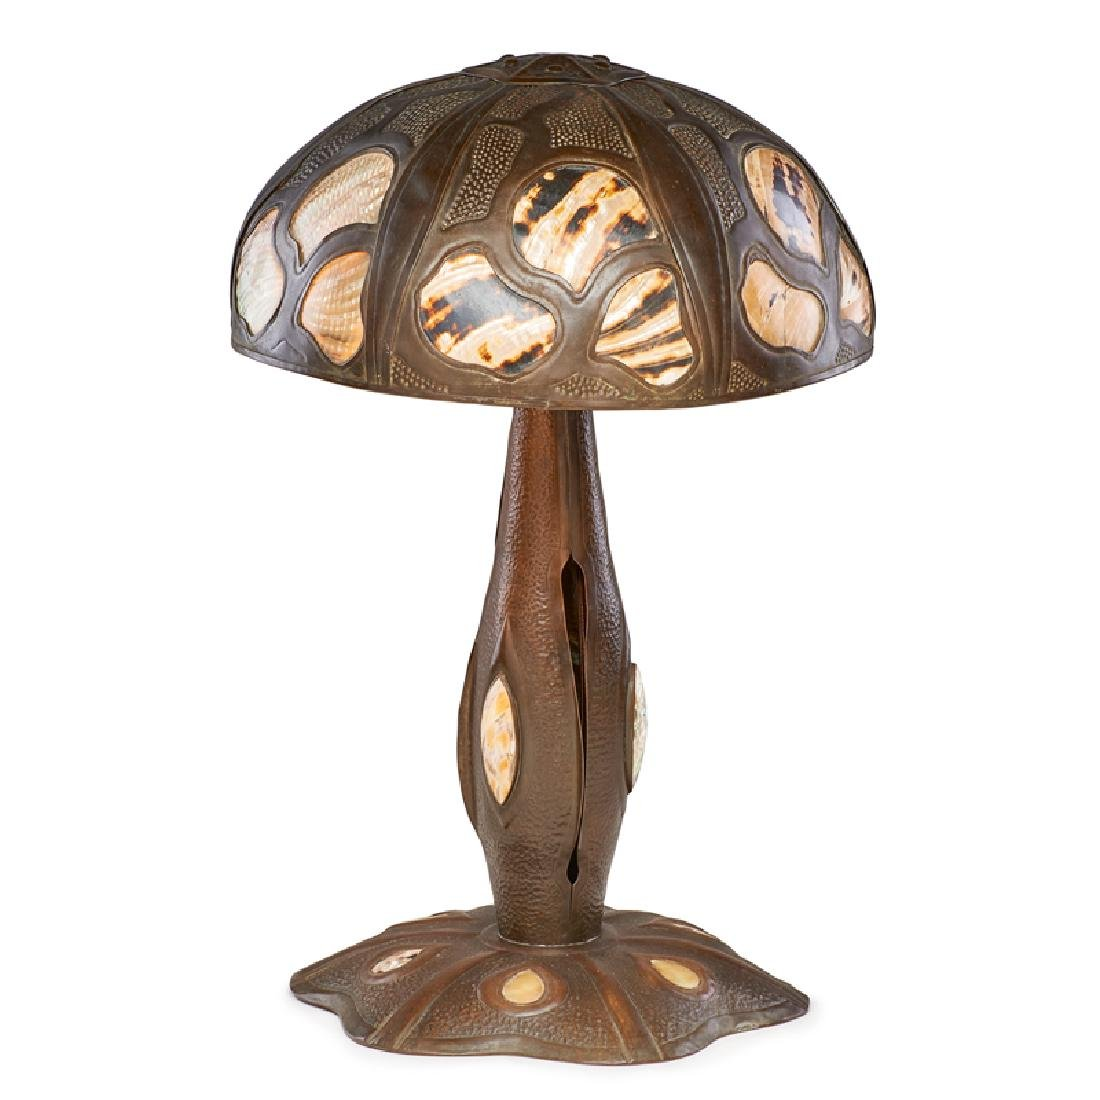 ELIZABETH BURTON Exceptional table lamp